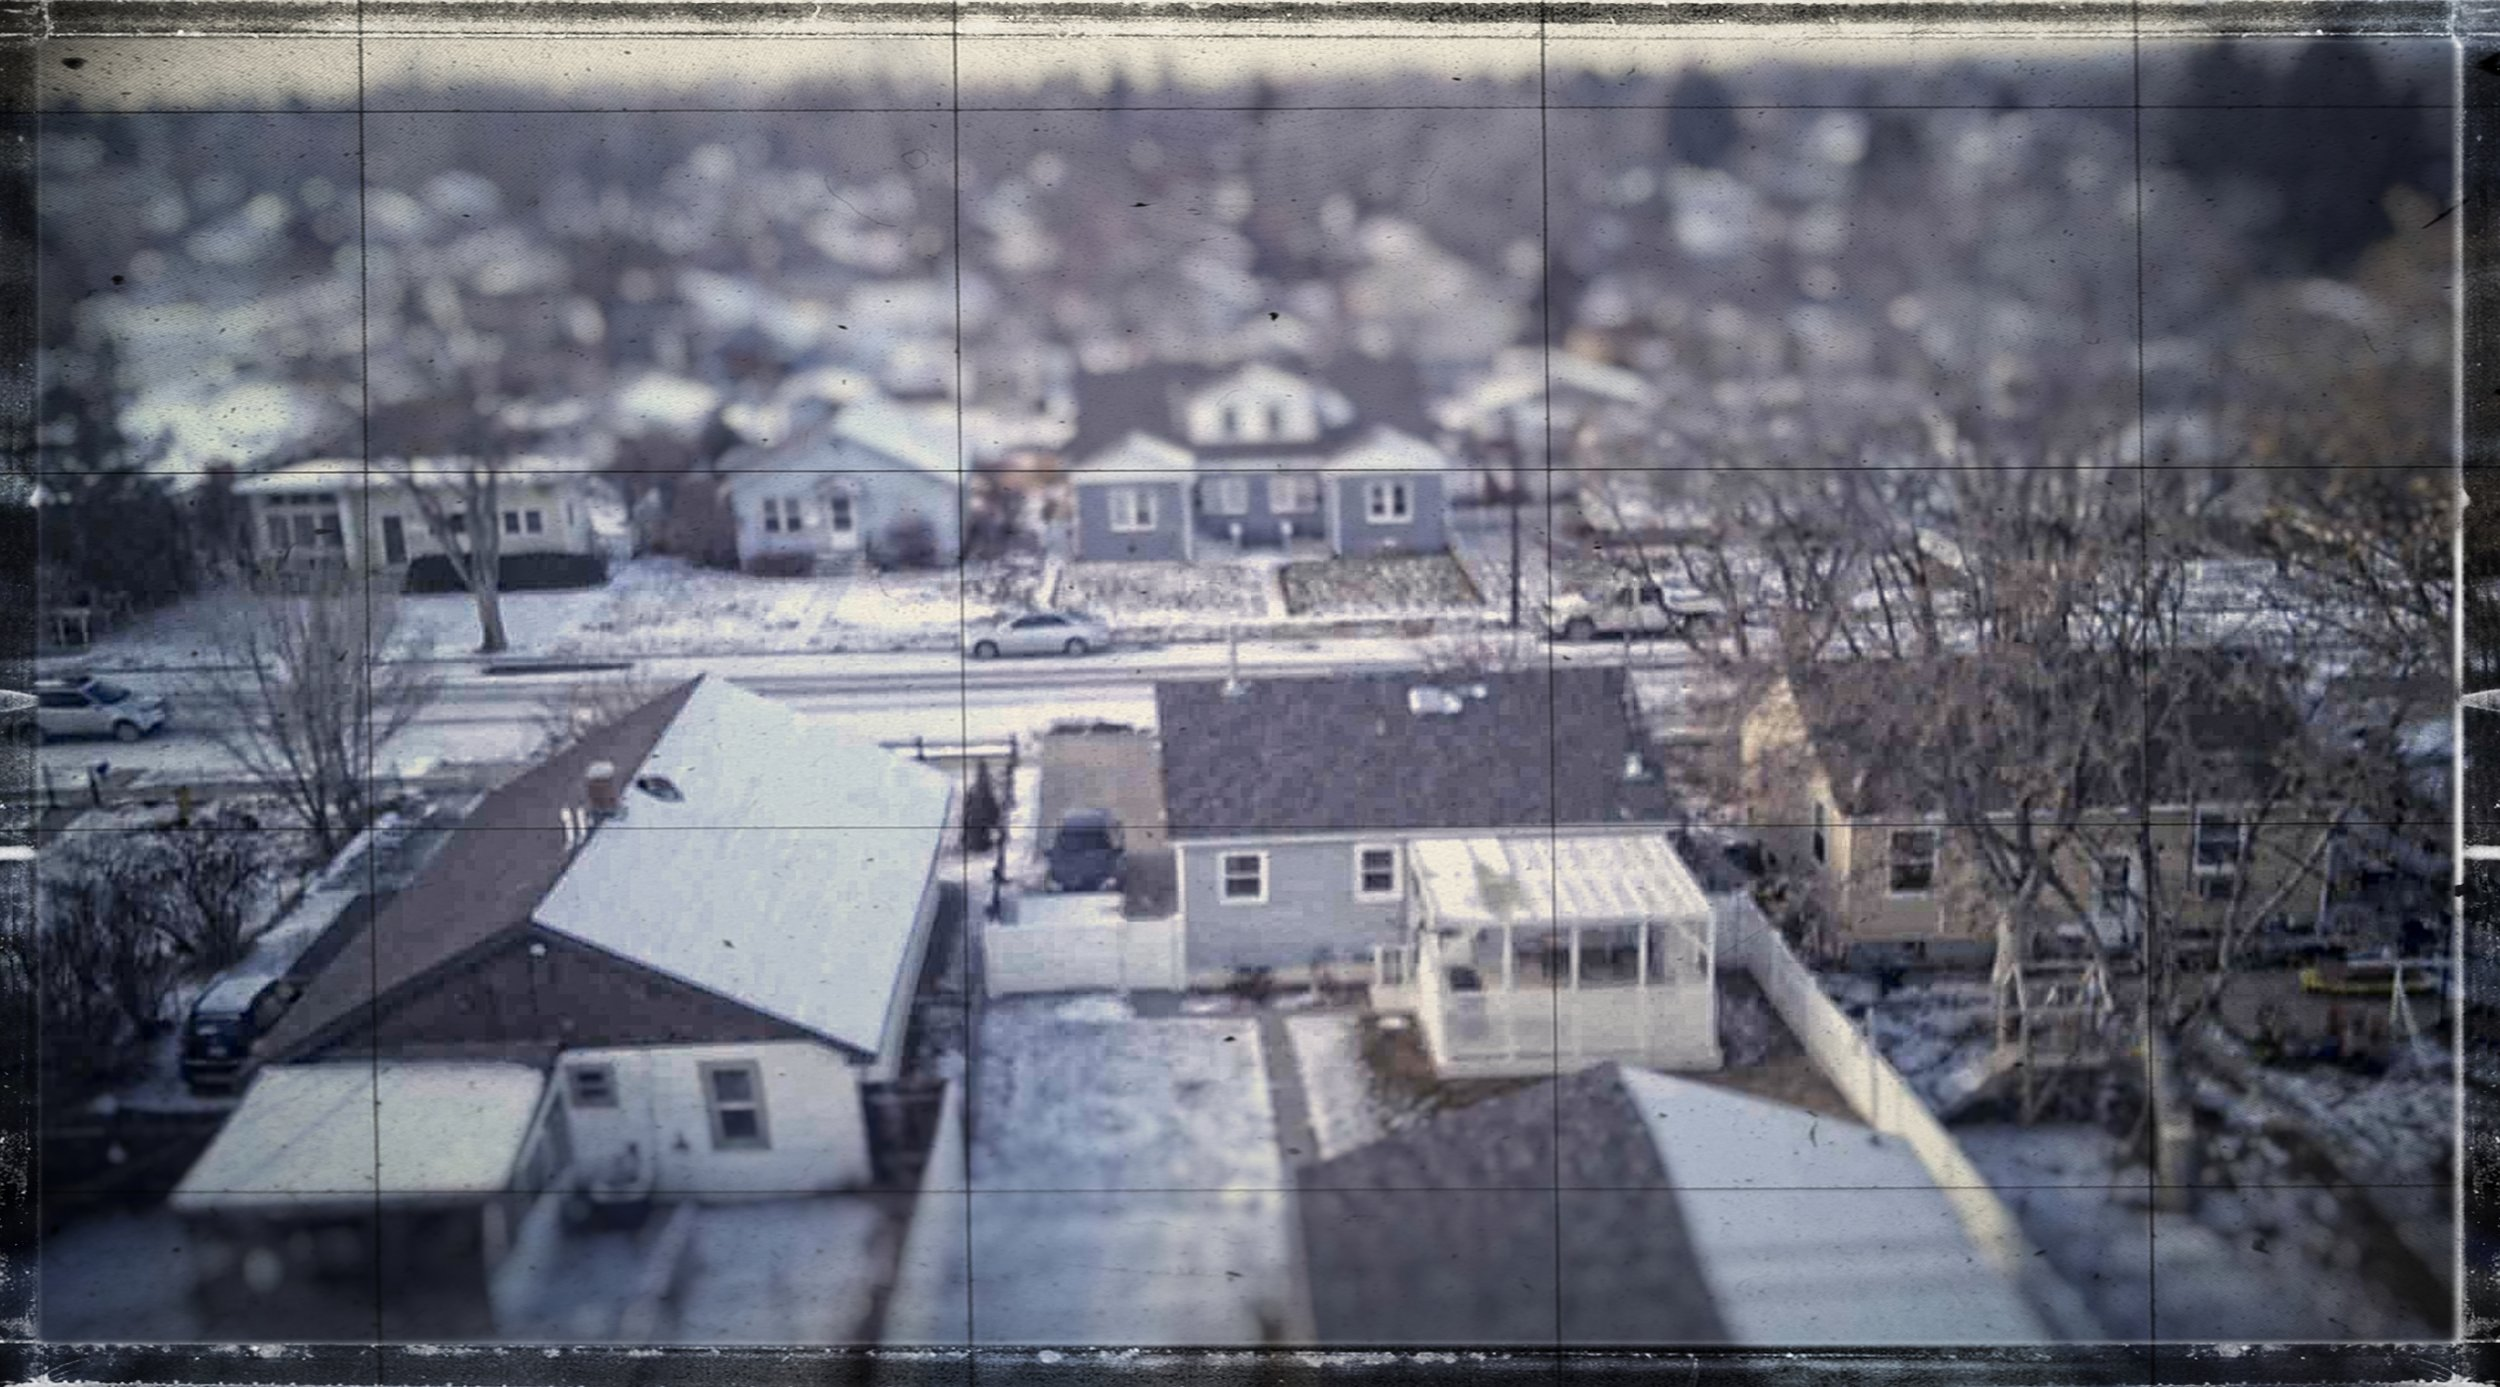 My modest neighborhood via JJRC H12 and its low-grade 5MP camera (edited in On 1 Photo 10 software).